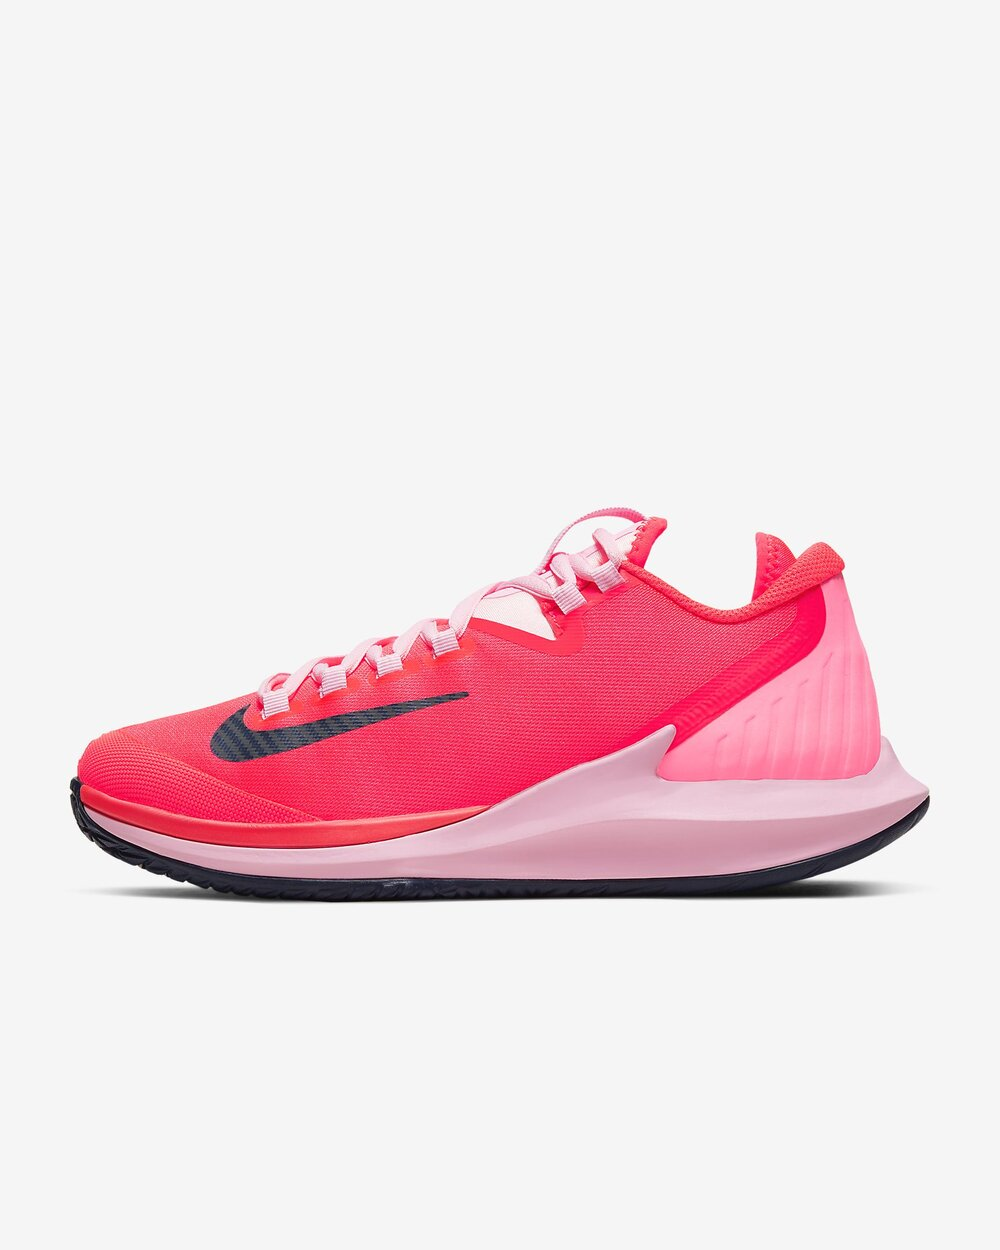 nikecourt-air-zoom-zero-womens-tennis-shoe-b6XpQ7.jpg